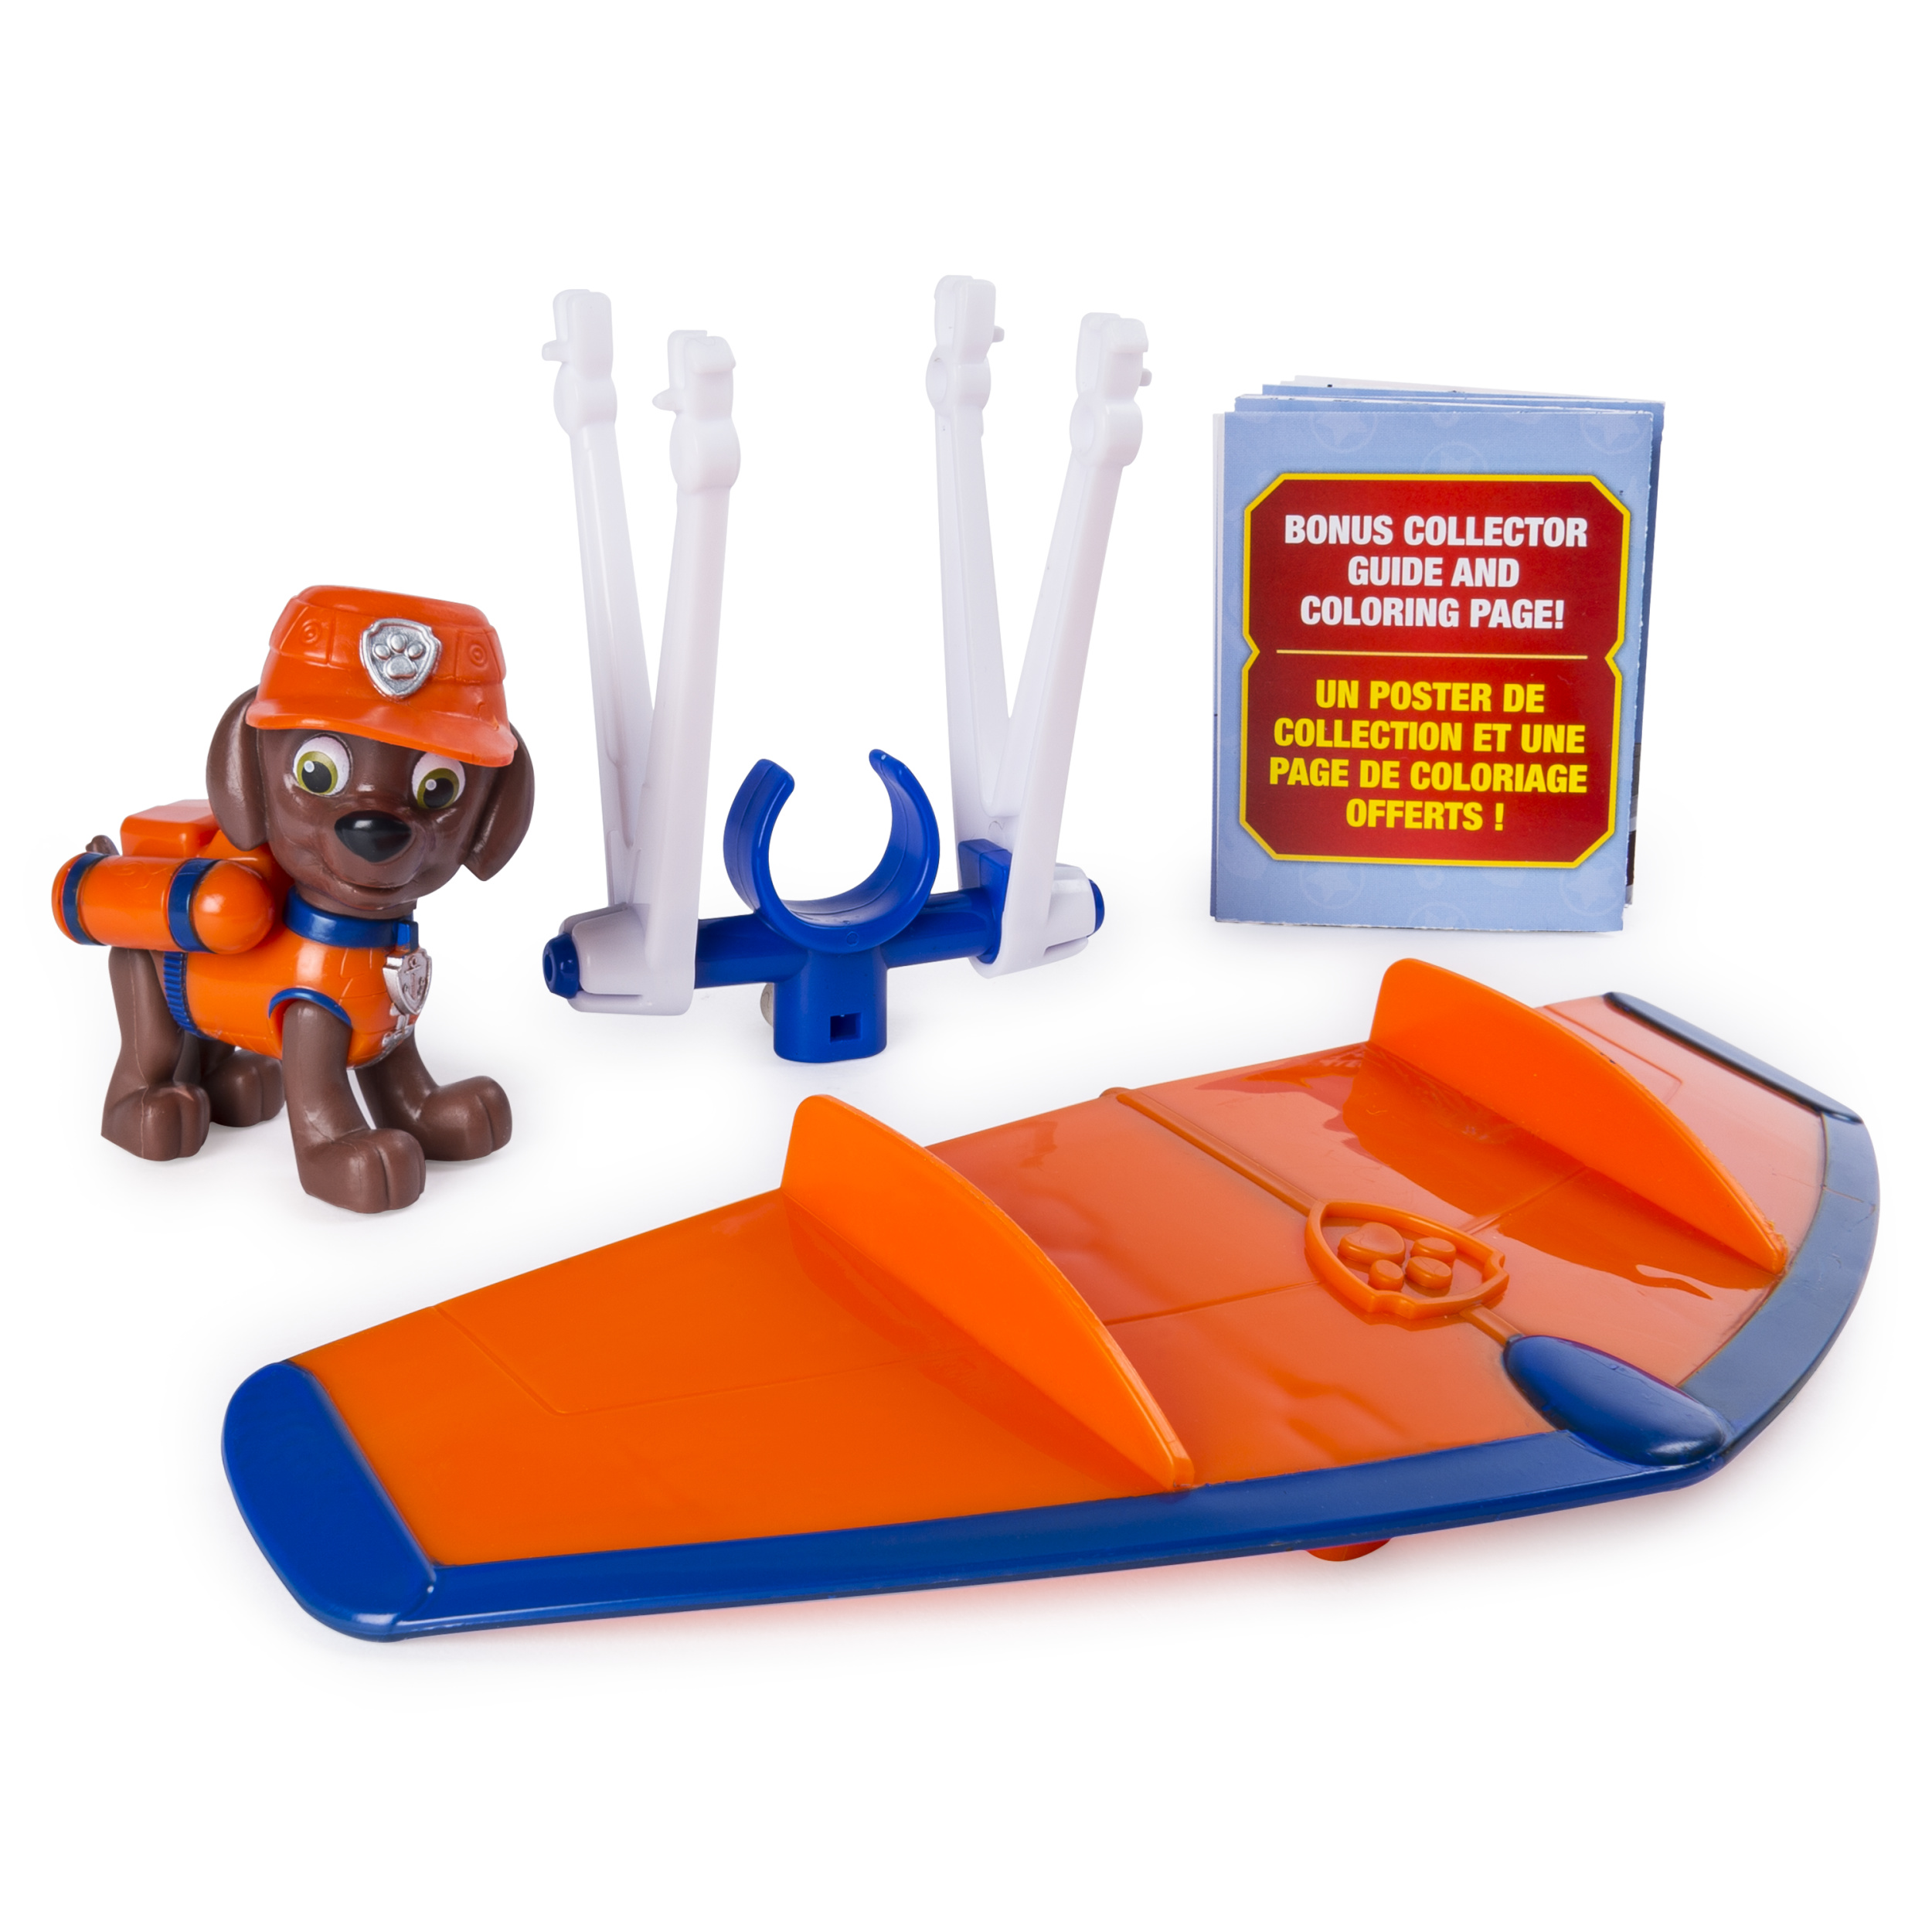 PAW Patrol Ultimate Rescue, Zuma's Mini Hang Glider with Collectible Figure for Ages 3 and Up